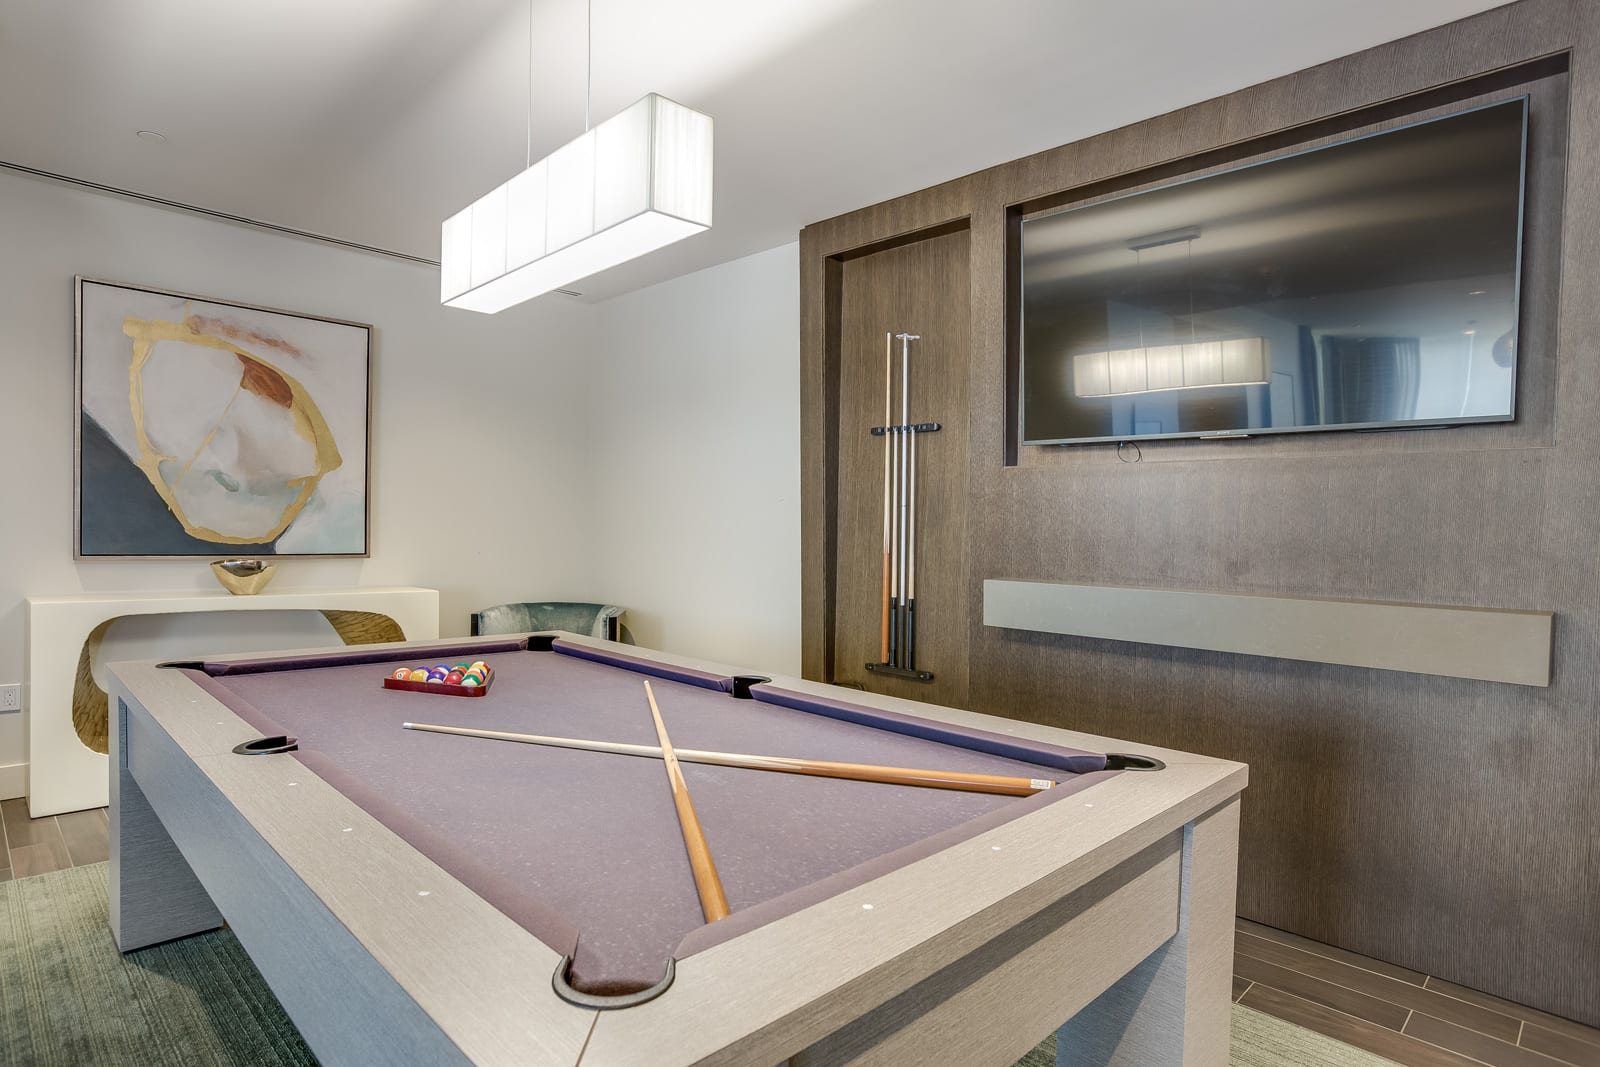 Clubroom with Billiards Table at Amaray Las Olas by Windsor, 215 SE 8th Ave, Fort Lauderdale